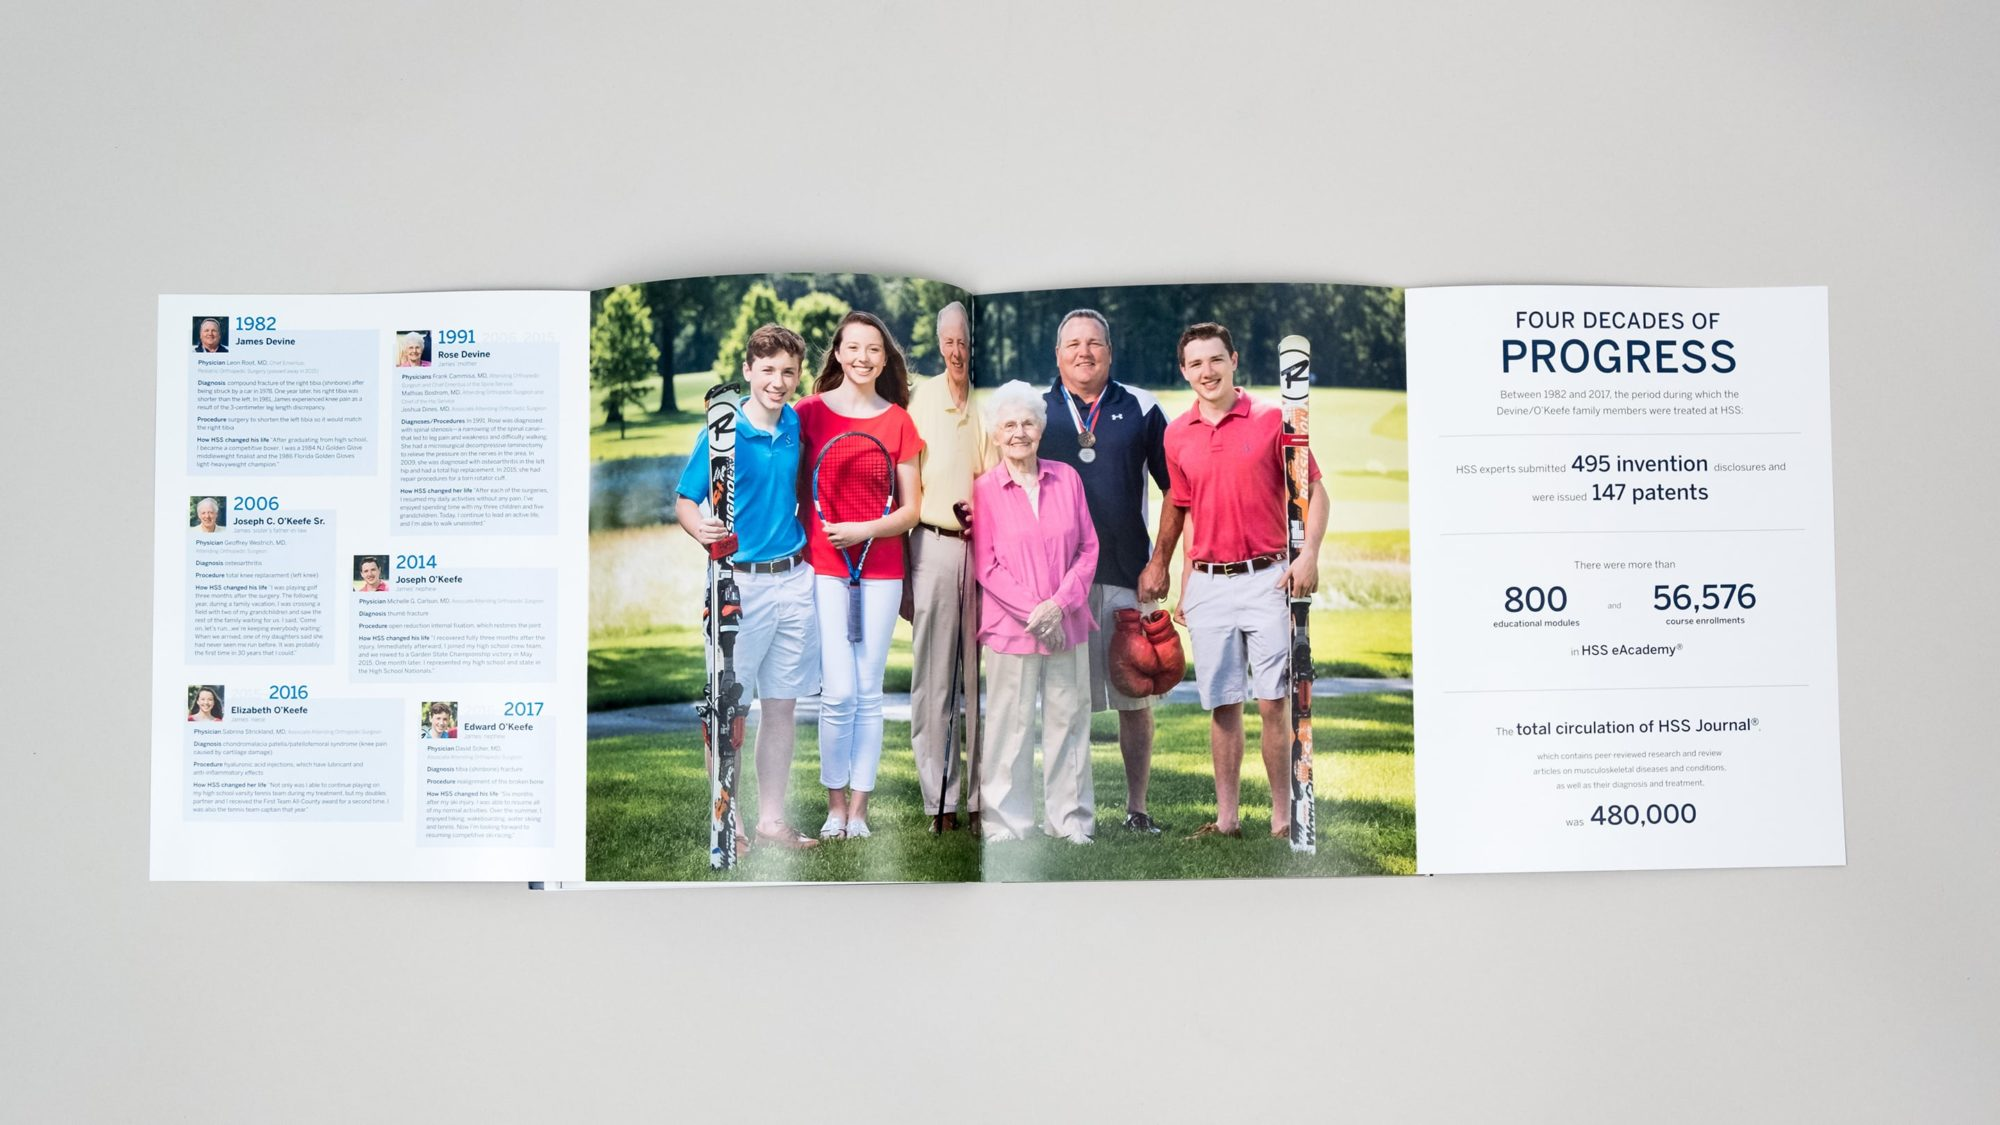 Gatefold spread showing the O'Keefe family, 3 generations of patients treated for sports injuries at the hospital over a 25 year period